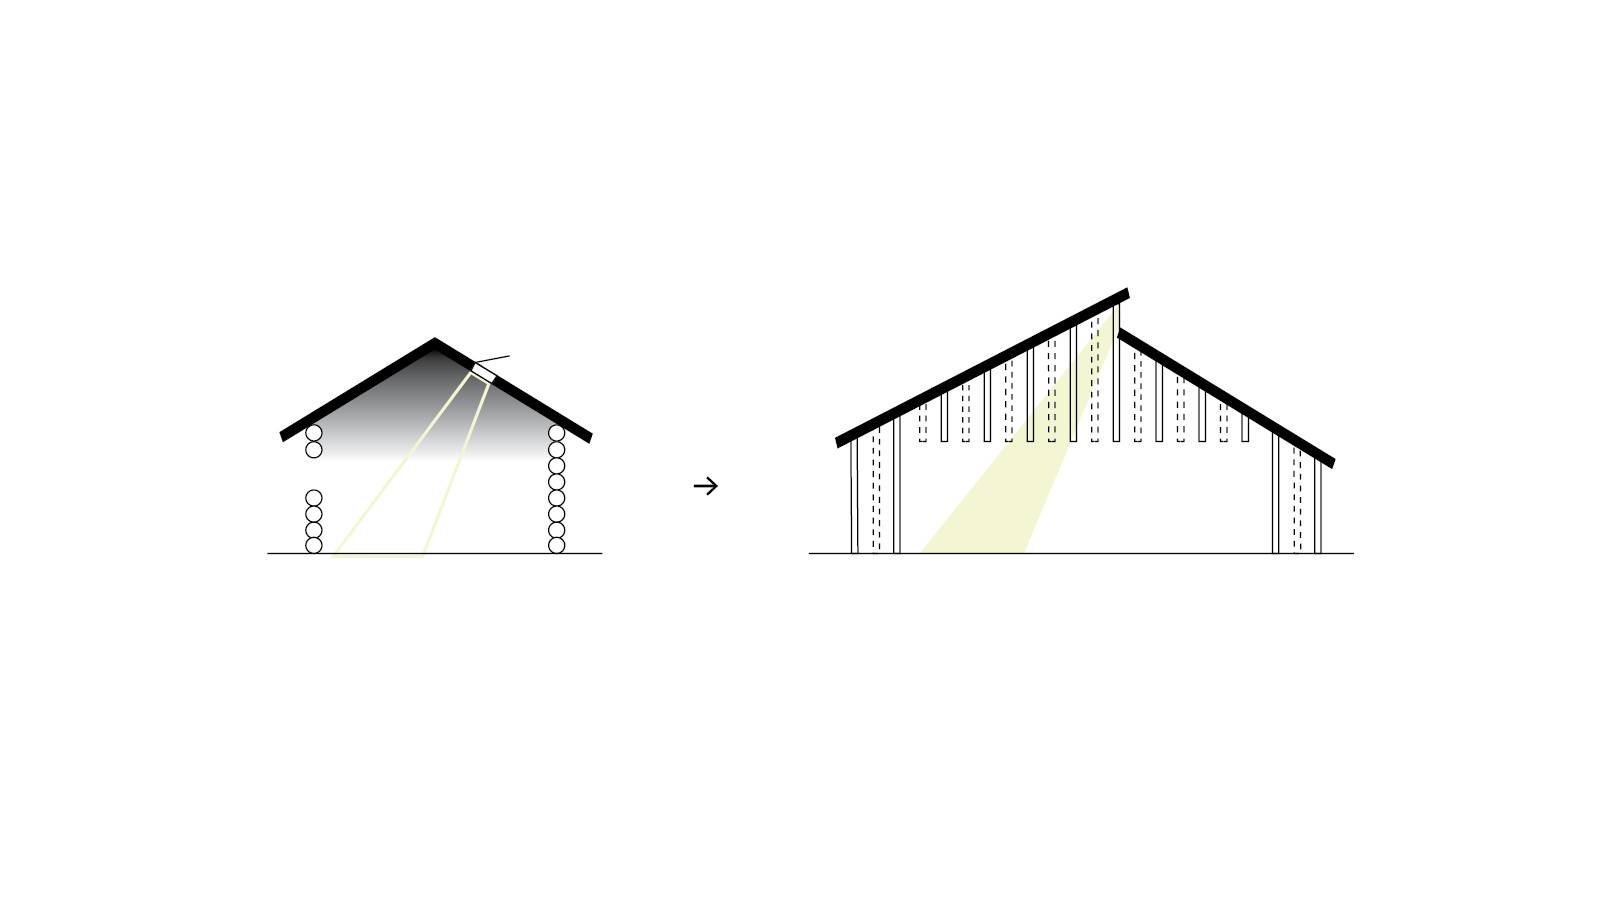 ROOF DIAGRAM - Skogfinsk Museum - SPOL Architects